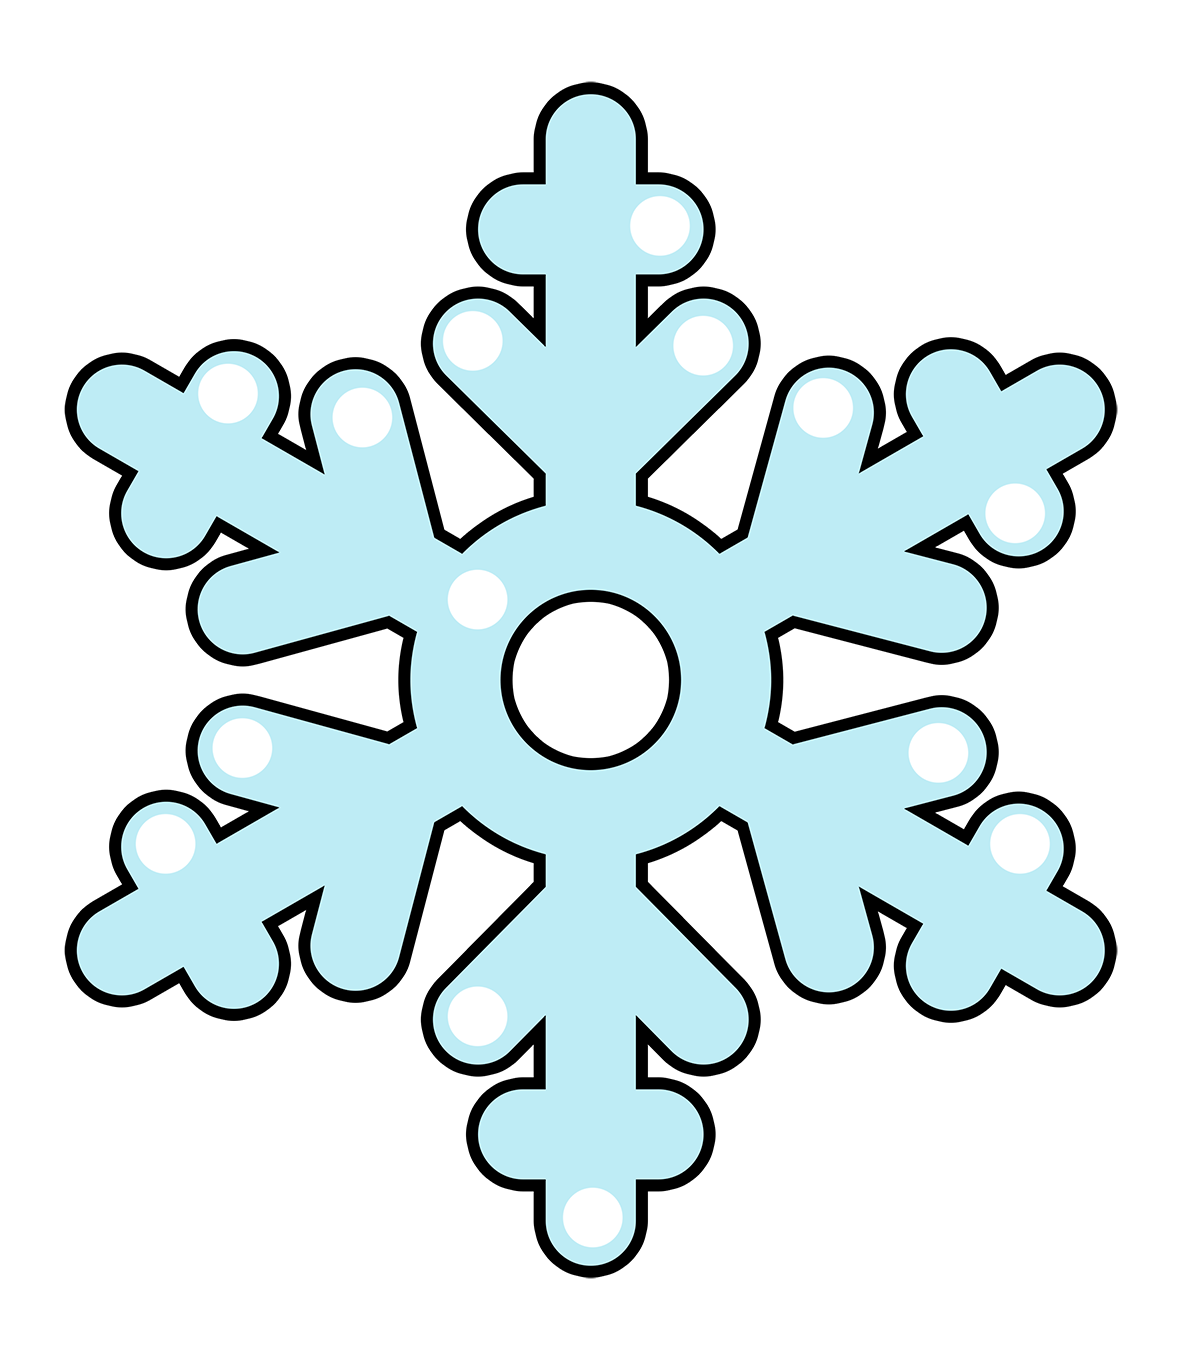 Snowflakes free to use clip art